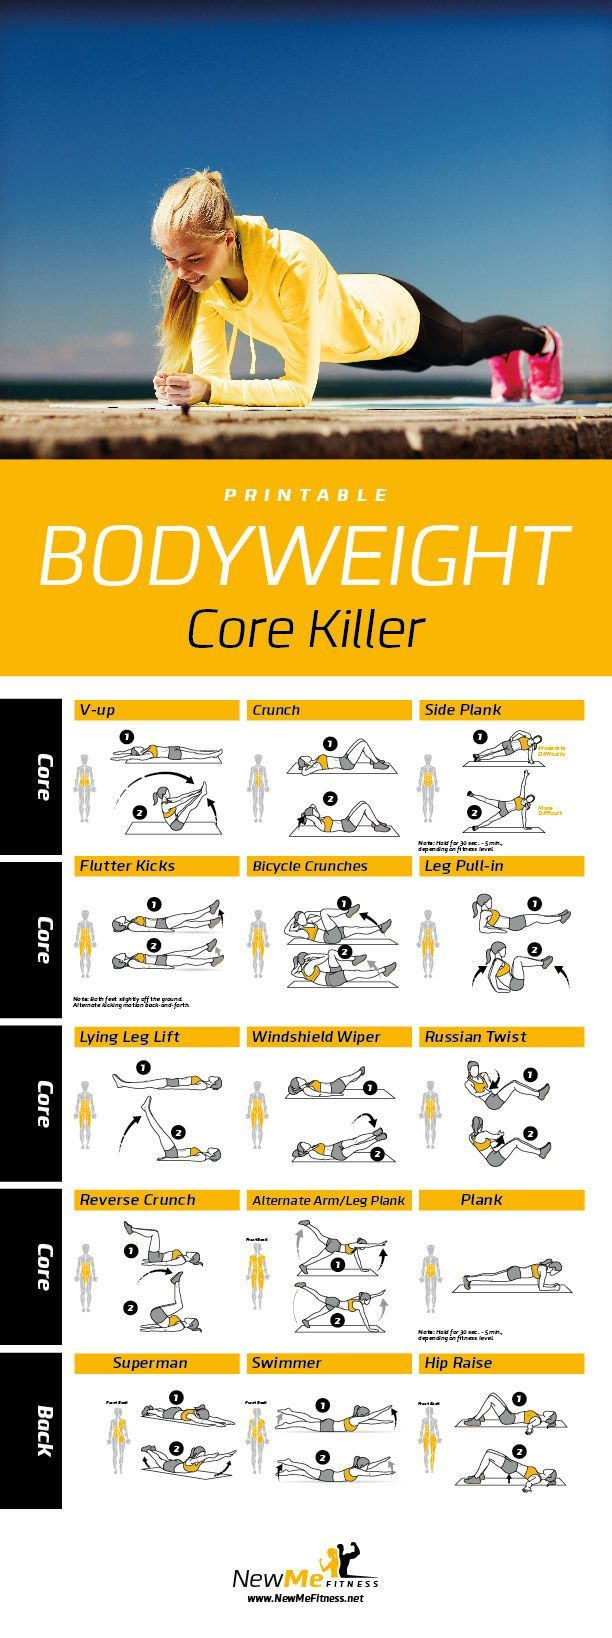 See more here ► https://www.youtube.com/watch?v=__Gi8cvdquw Tags: what the quickest way to lose weight, quickest safest way to lose weight, i need to lose weight quickly - Printable Core Stability Ball Workout Poster